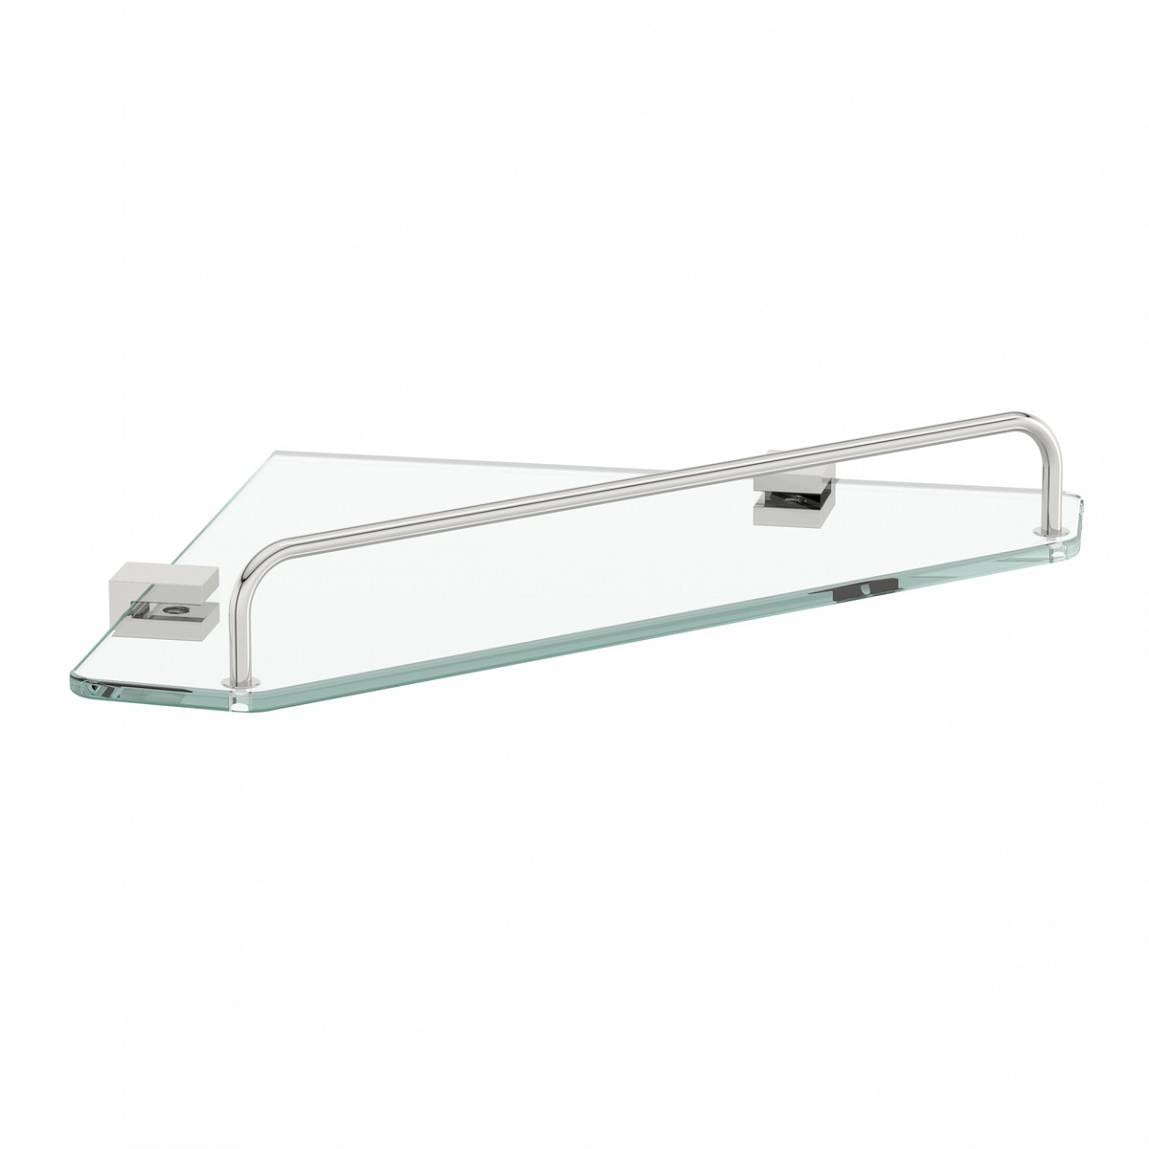 Orchard Options squared corner glass shelf